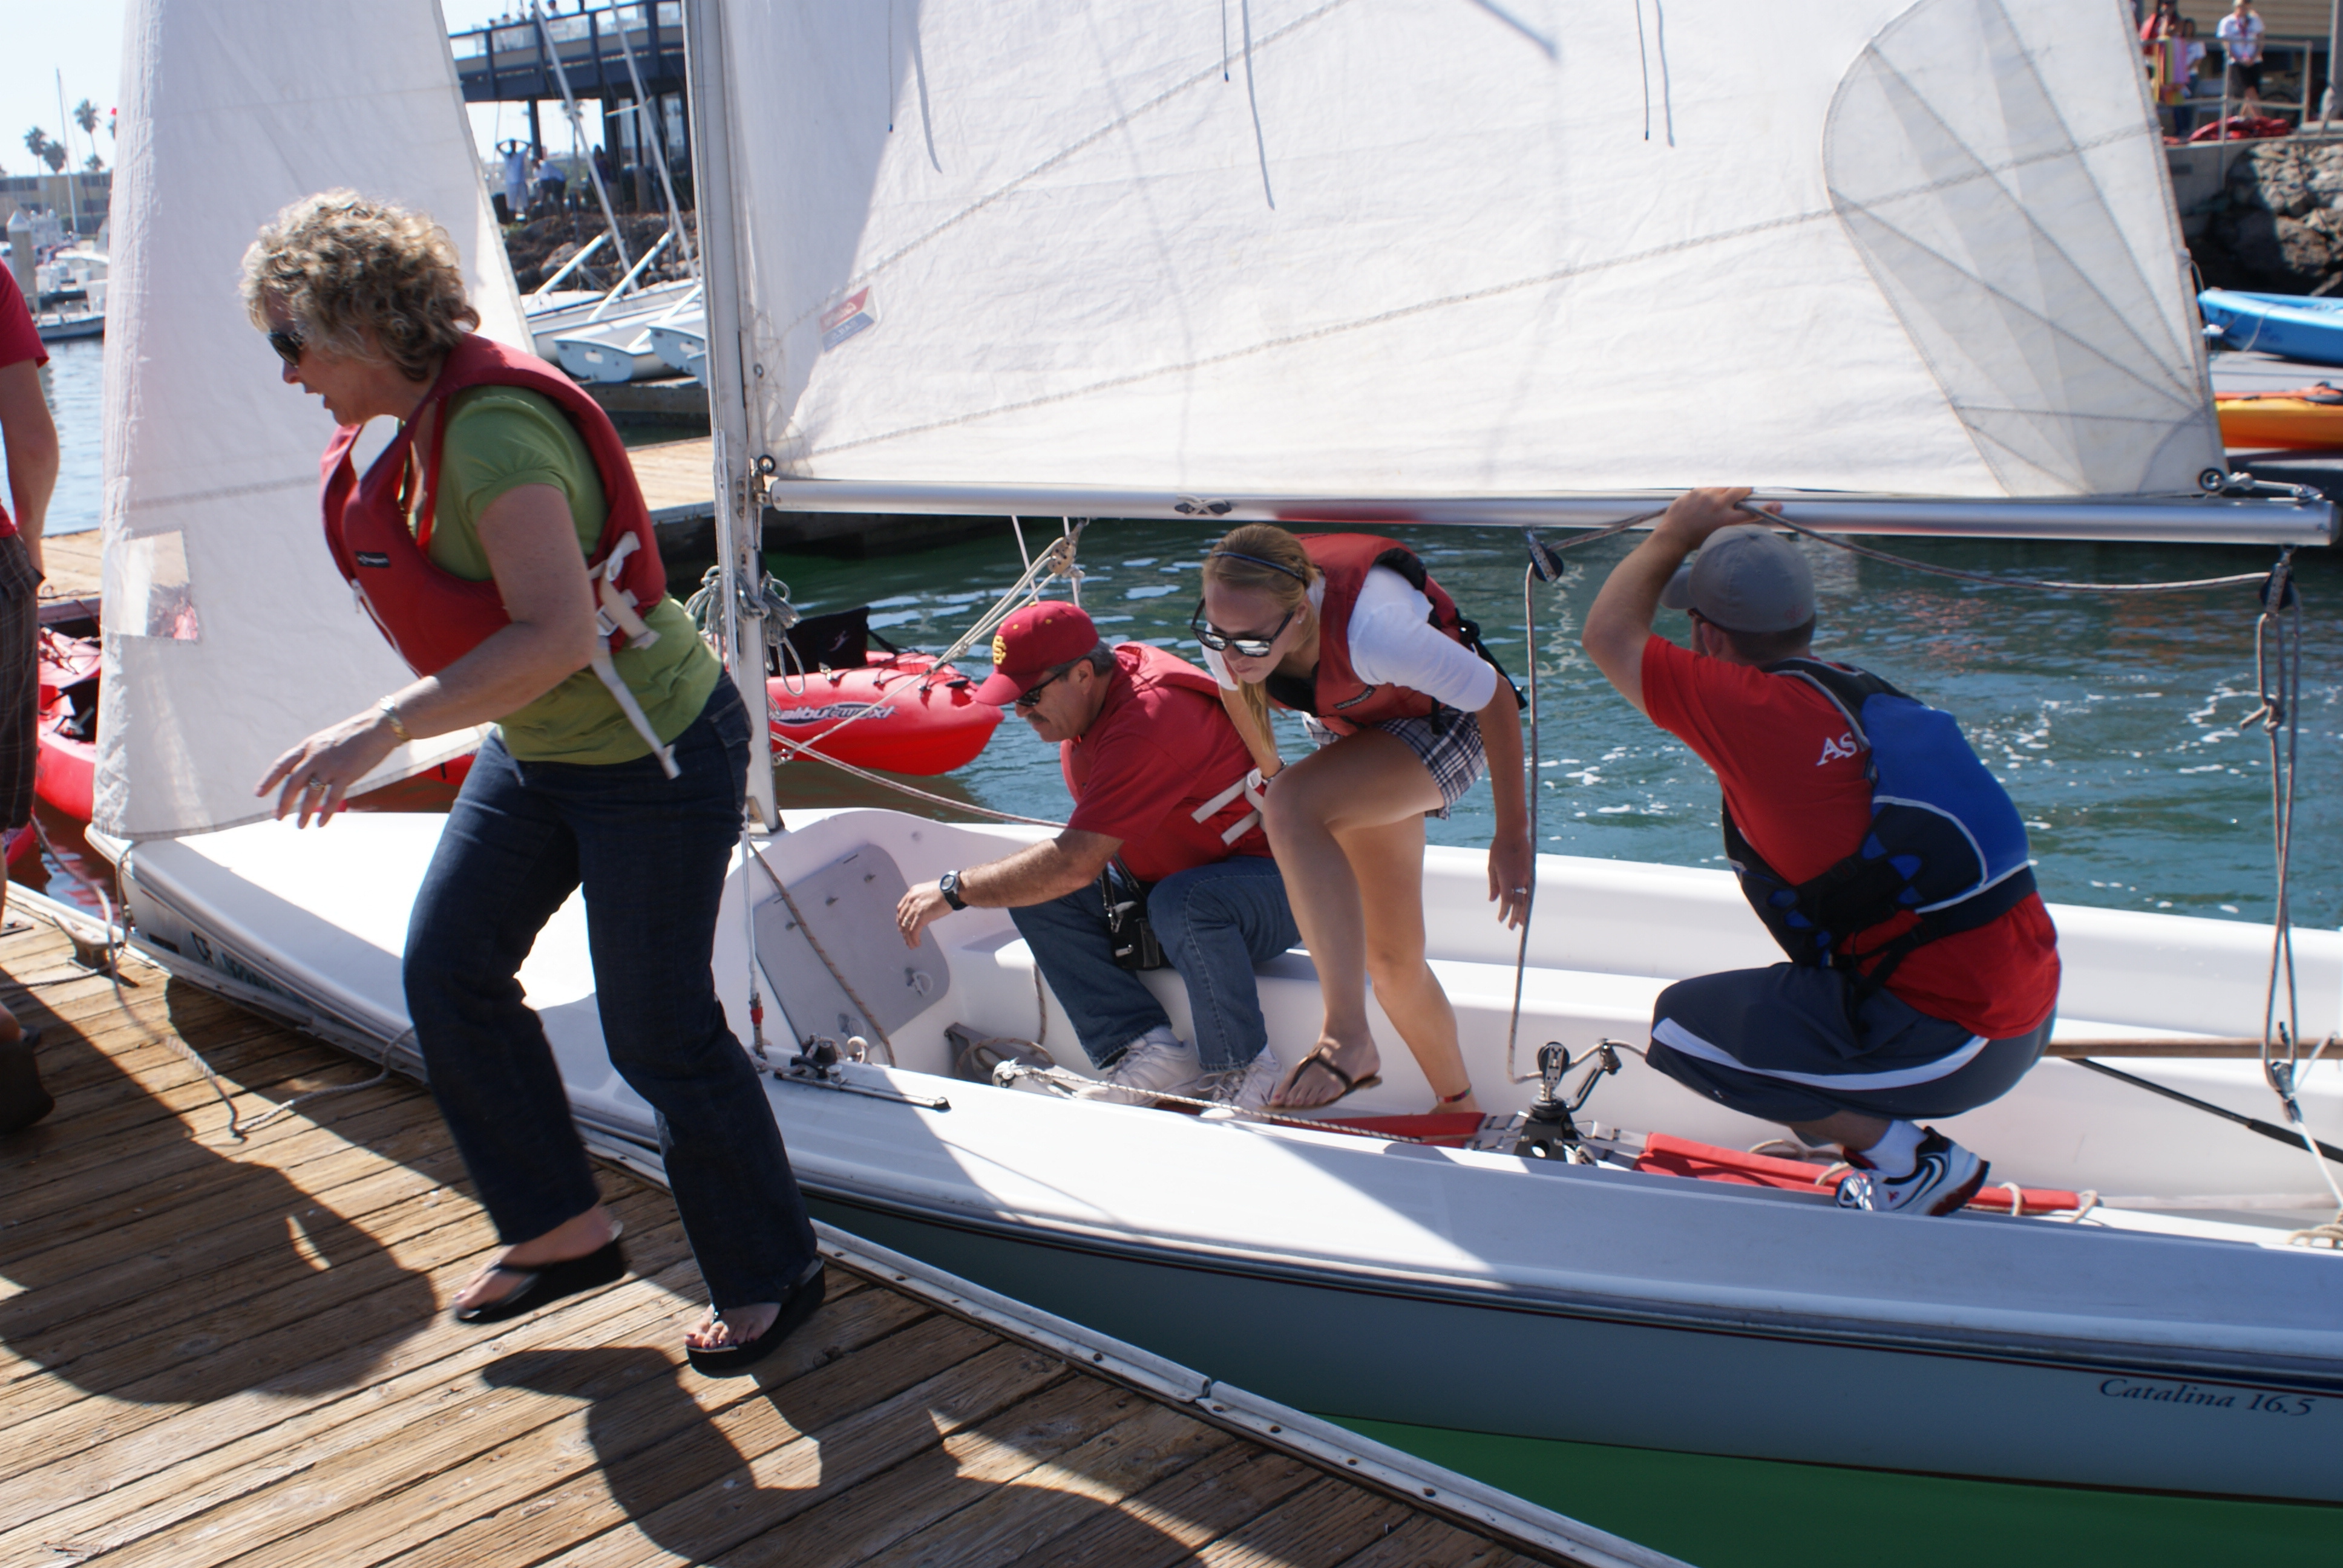 Students getting out of a sailboat